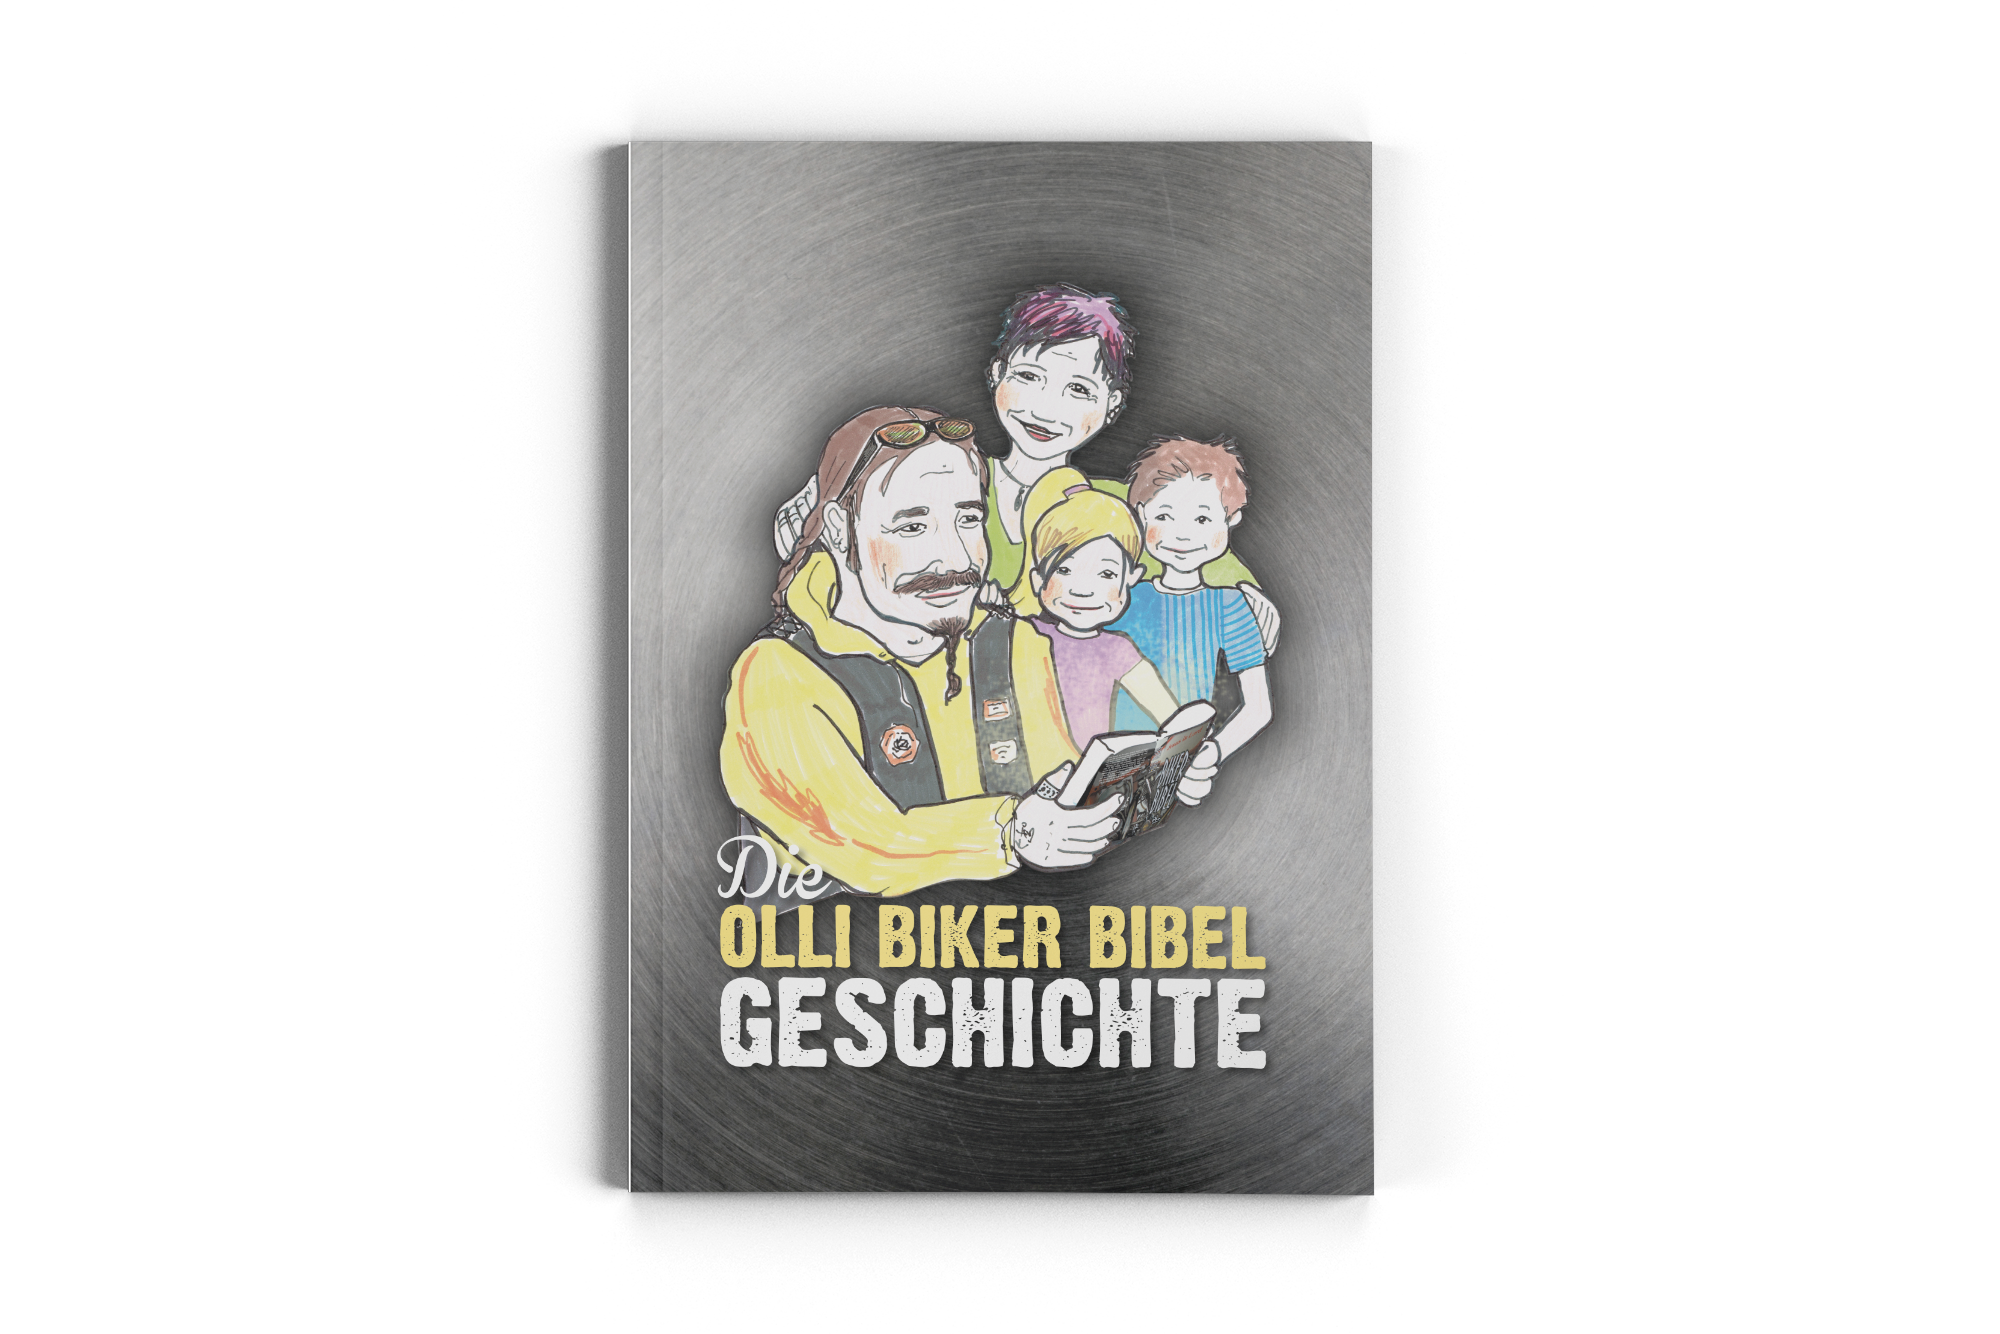 A Biker Bible story, through the eyes of William and Emma